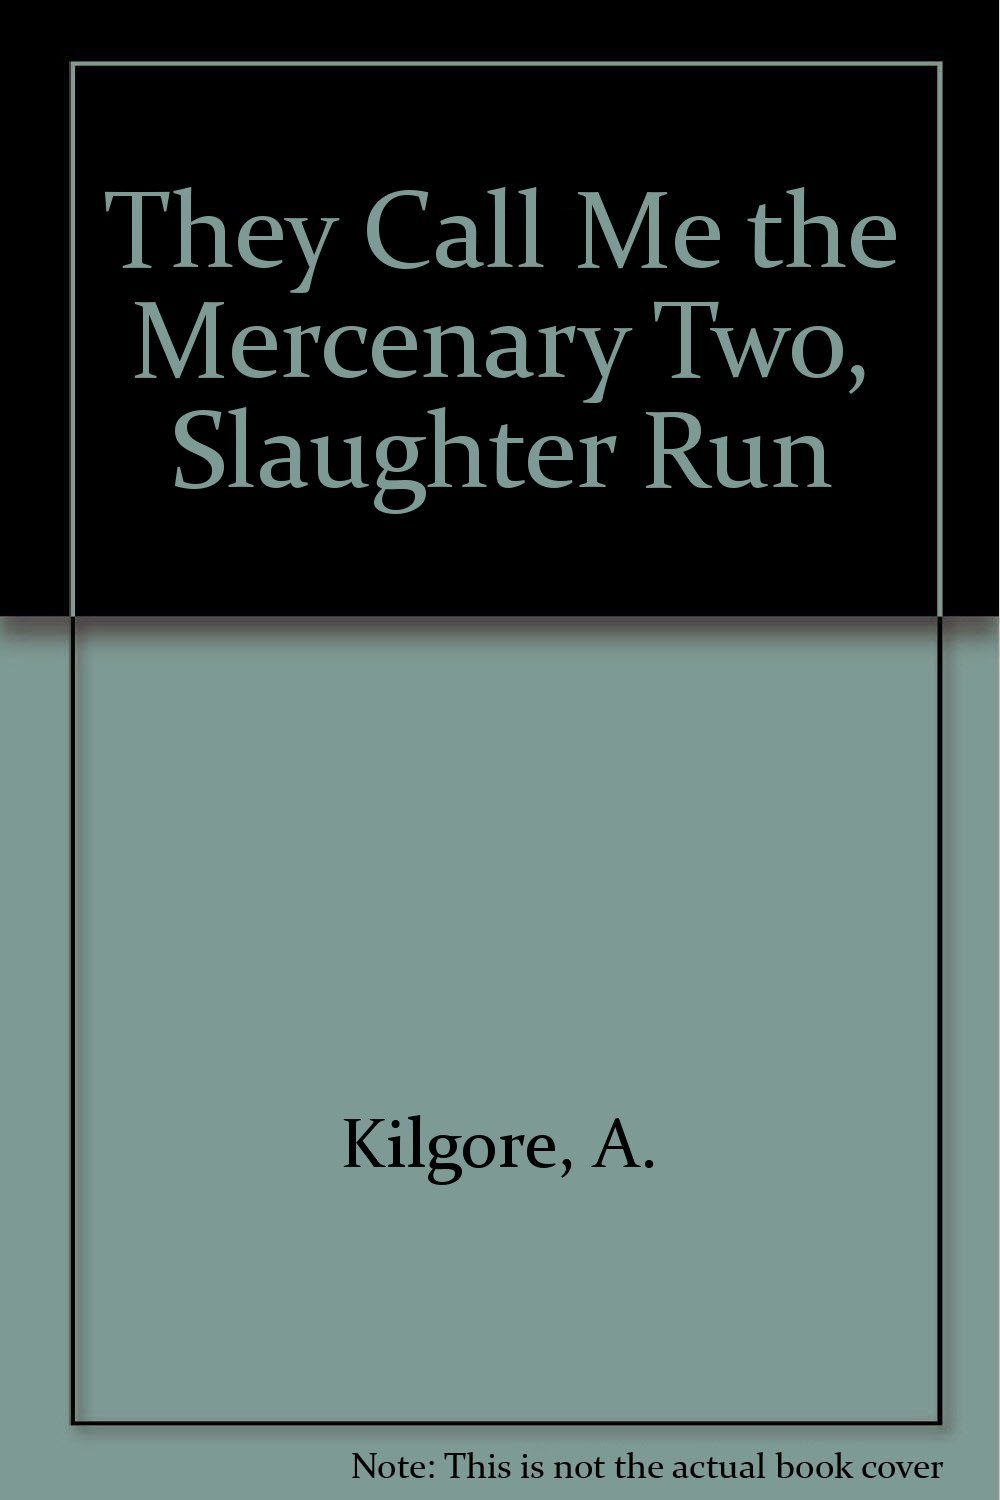 They Call Me the Mercenary Two, Slaughter Run: A. Kilgore: 9780890837191:  Amazon.com: Books